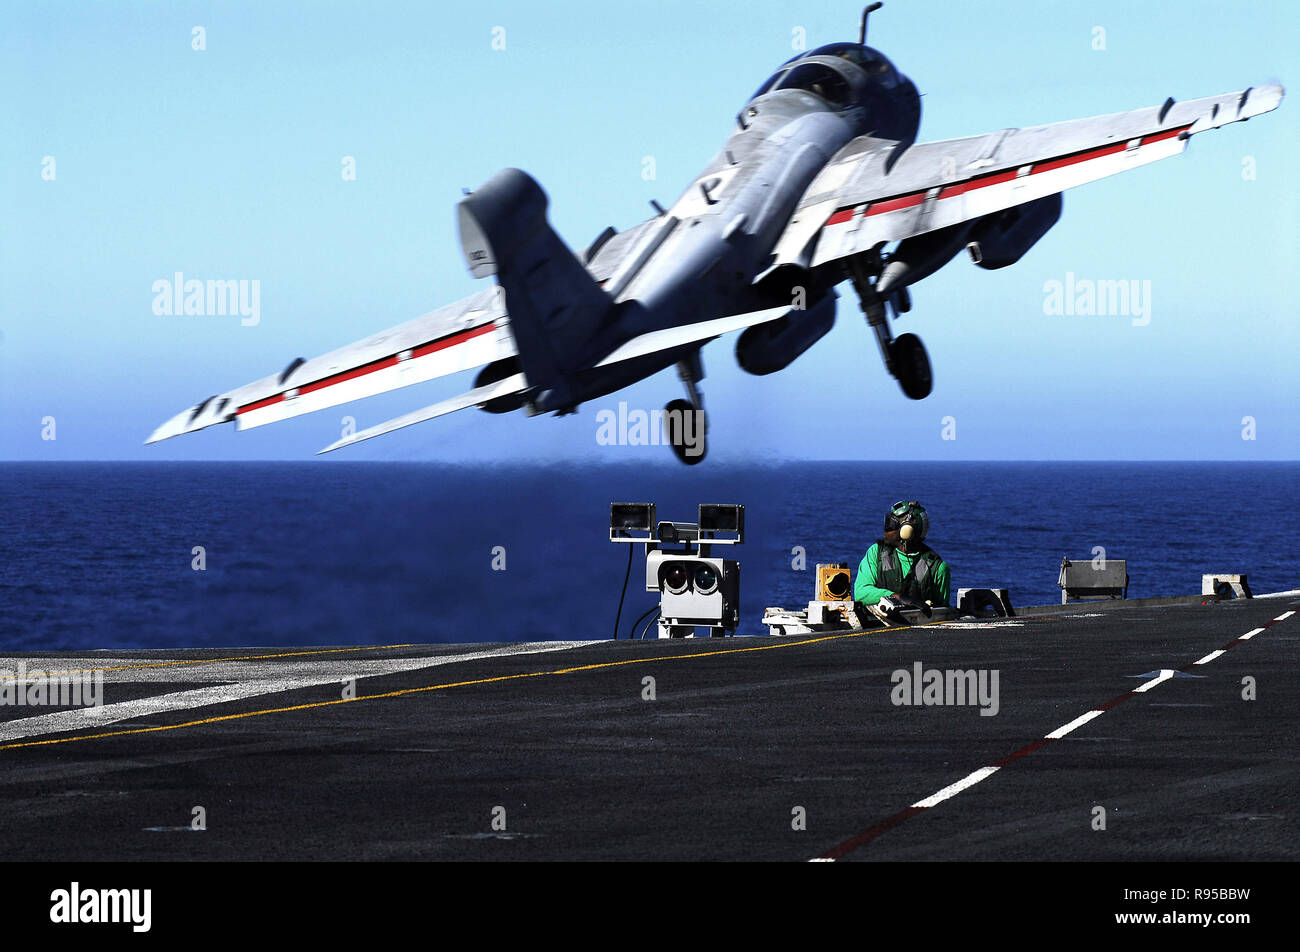 """An EA-6B Prowler assigned to the """"Yellowjackets"""" of Tactical Electronic Warfare Squadron One Three Eight (VAQ-138) takes off from the flight deck as an Aviation Boatswains Mate  prepares to launch the next aircraft aboard the Nimitz- class aircraft carrier USS John C. Stennis (CVN 74). U.S. Navy photo by Mass Communication Specialist 3rd Class Jon Hyde Stock Photo"""